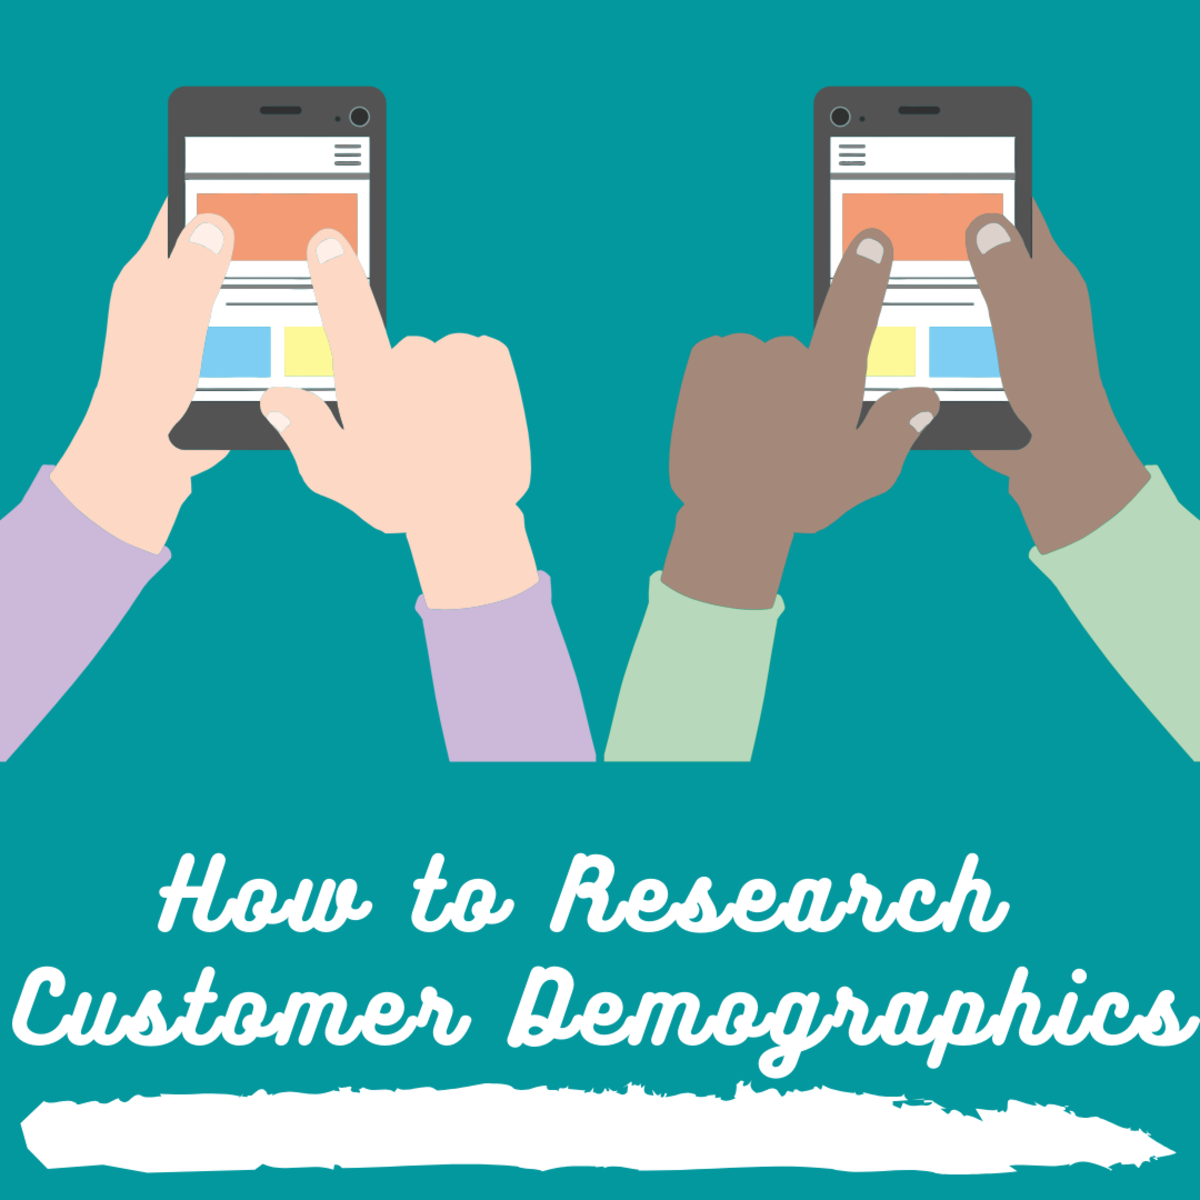 Why Online Presence Is Necessary and How to Research Customer Demographics